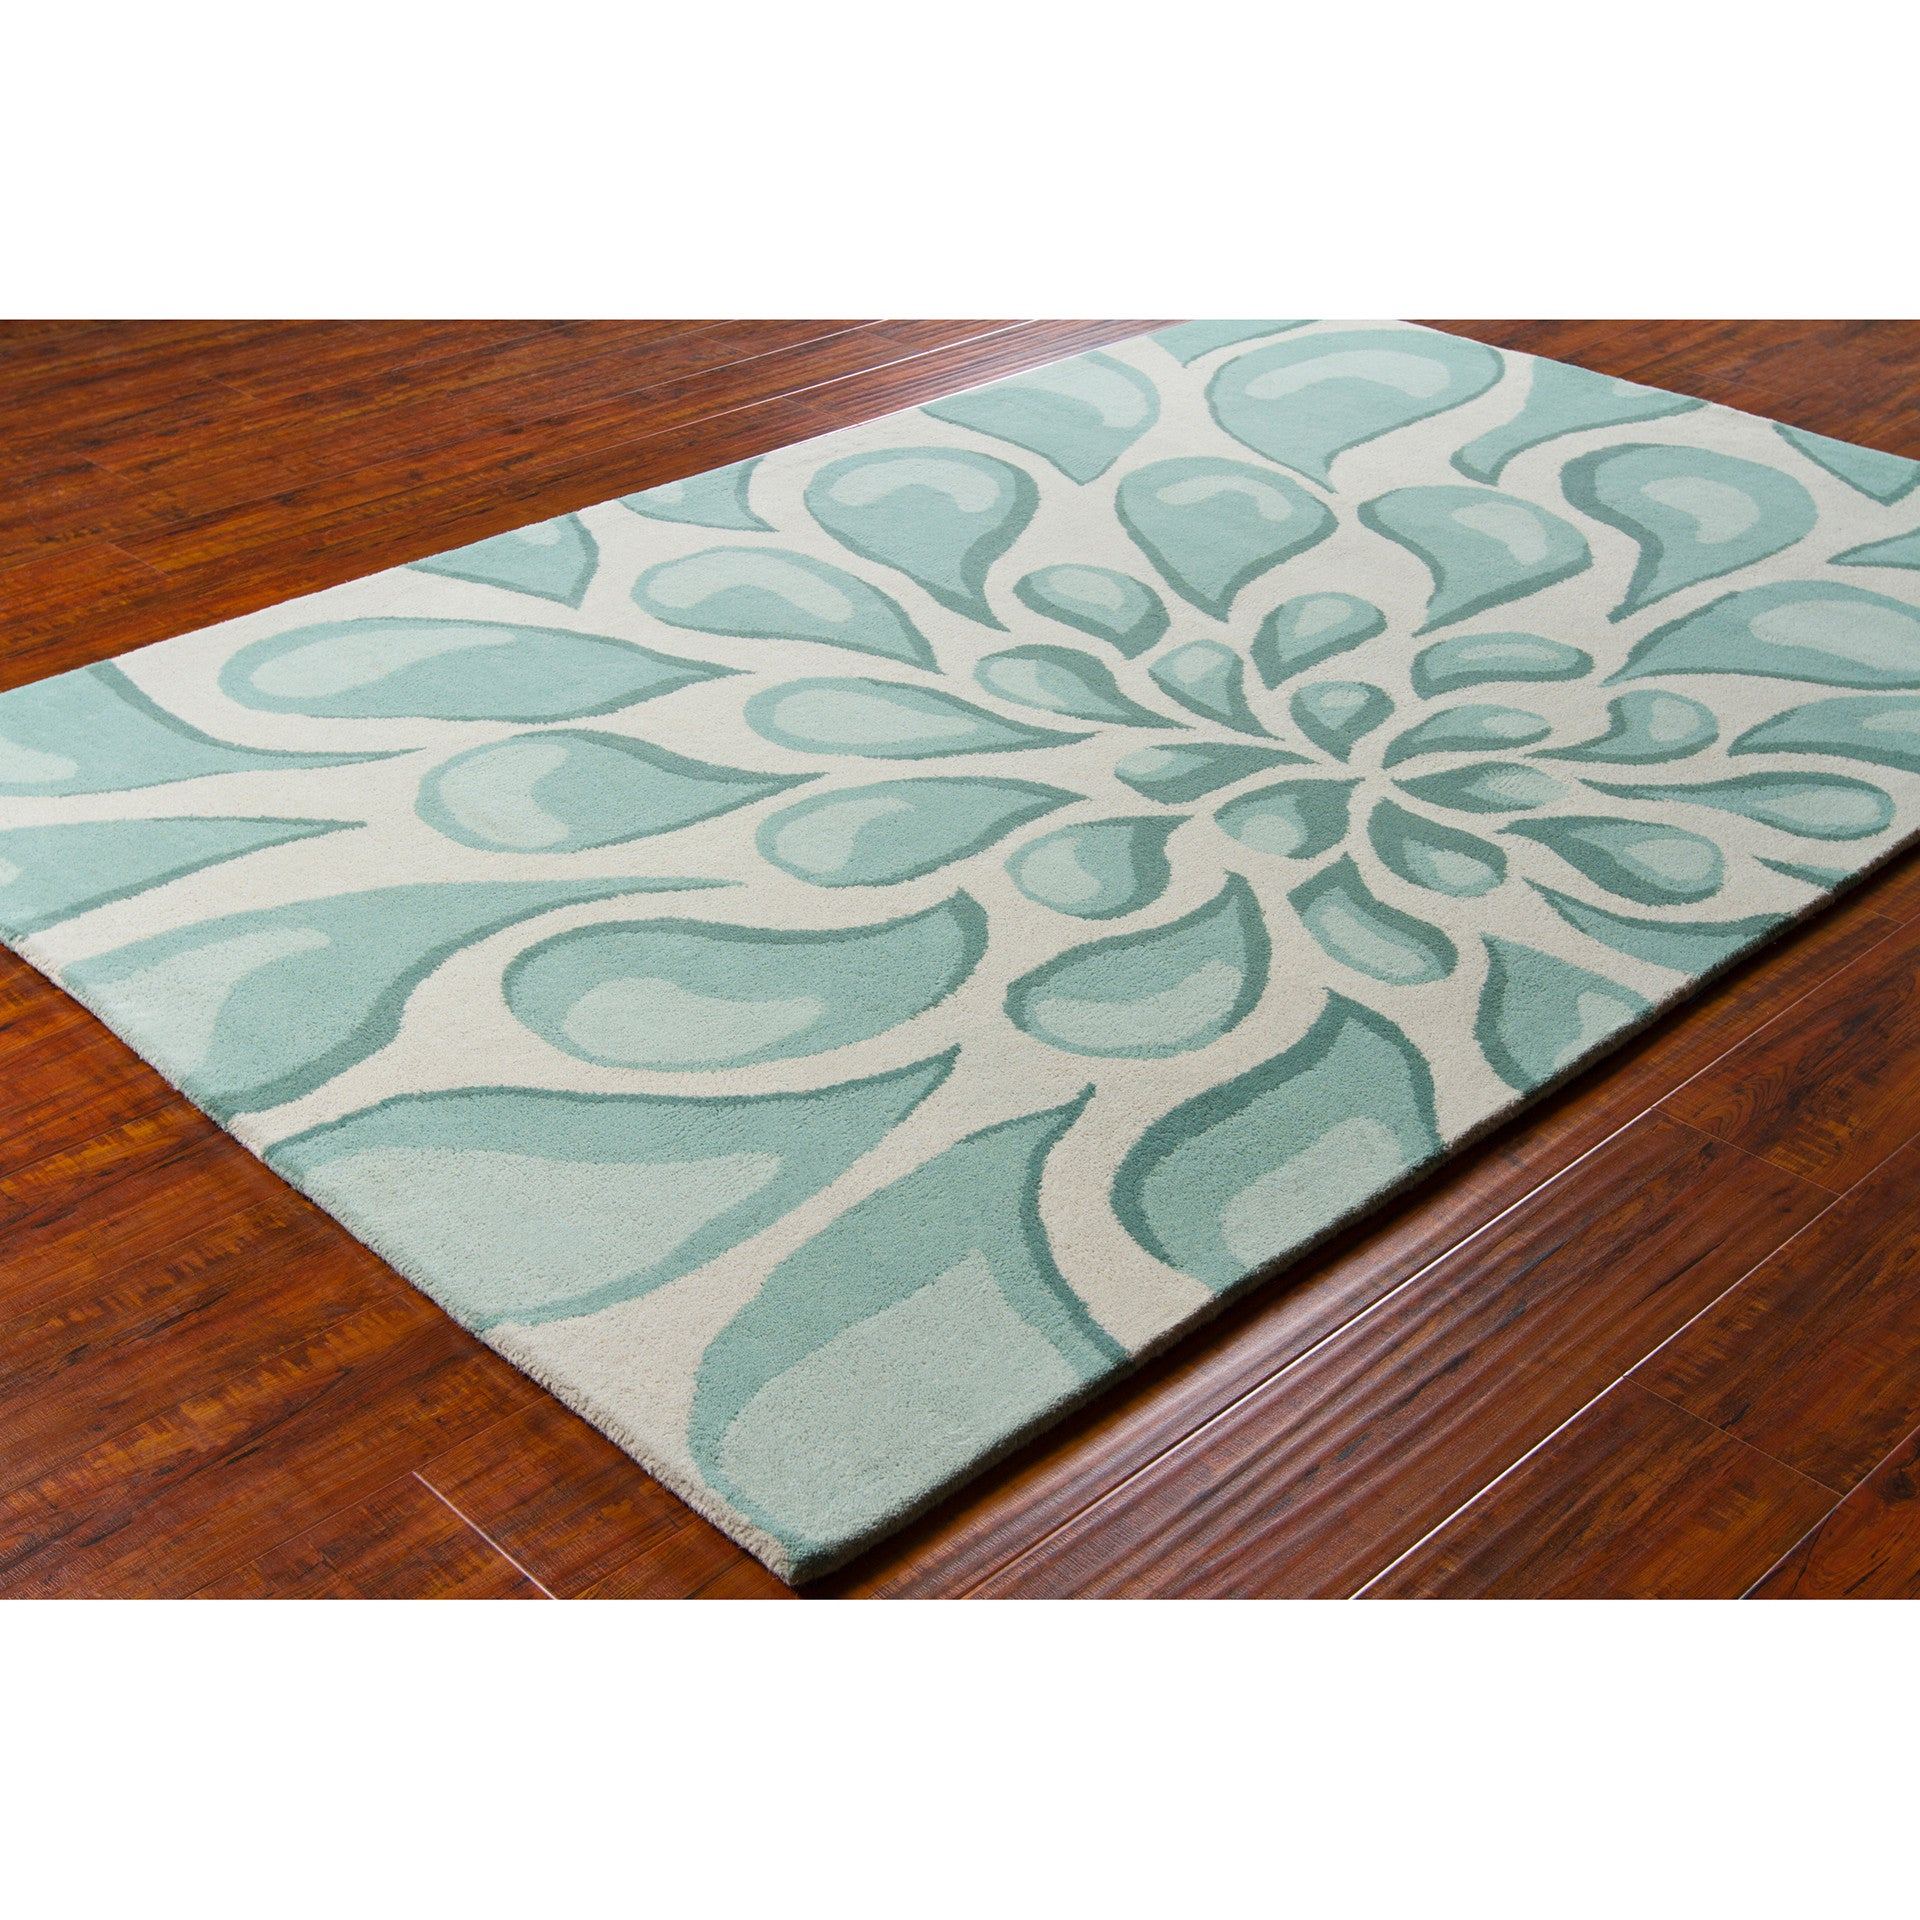 stella collection handtufted area rug in beige u0026 light aqua design by chandra rugs